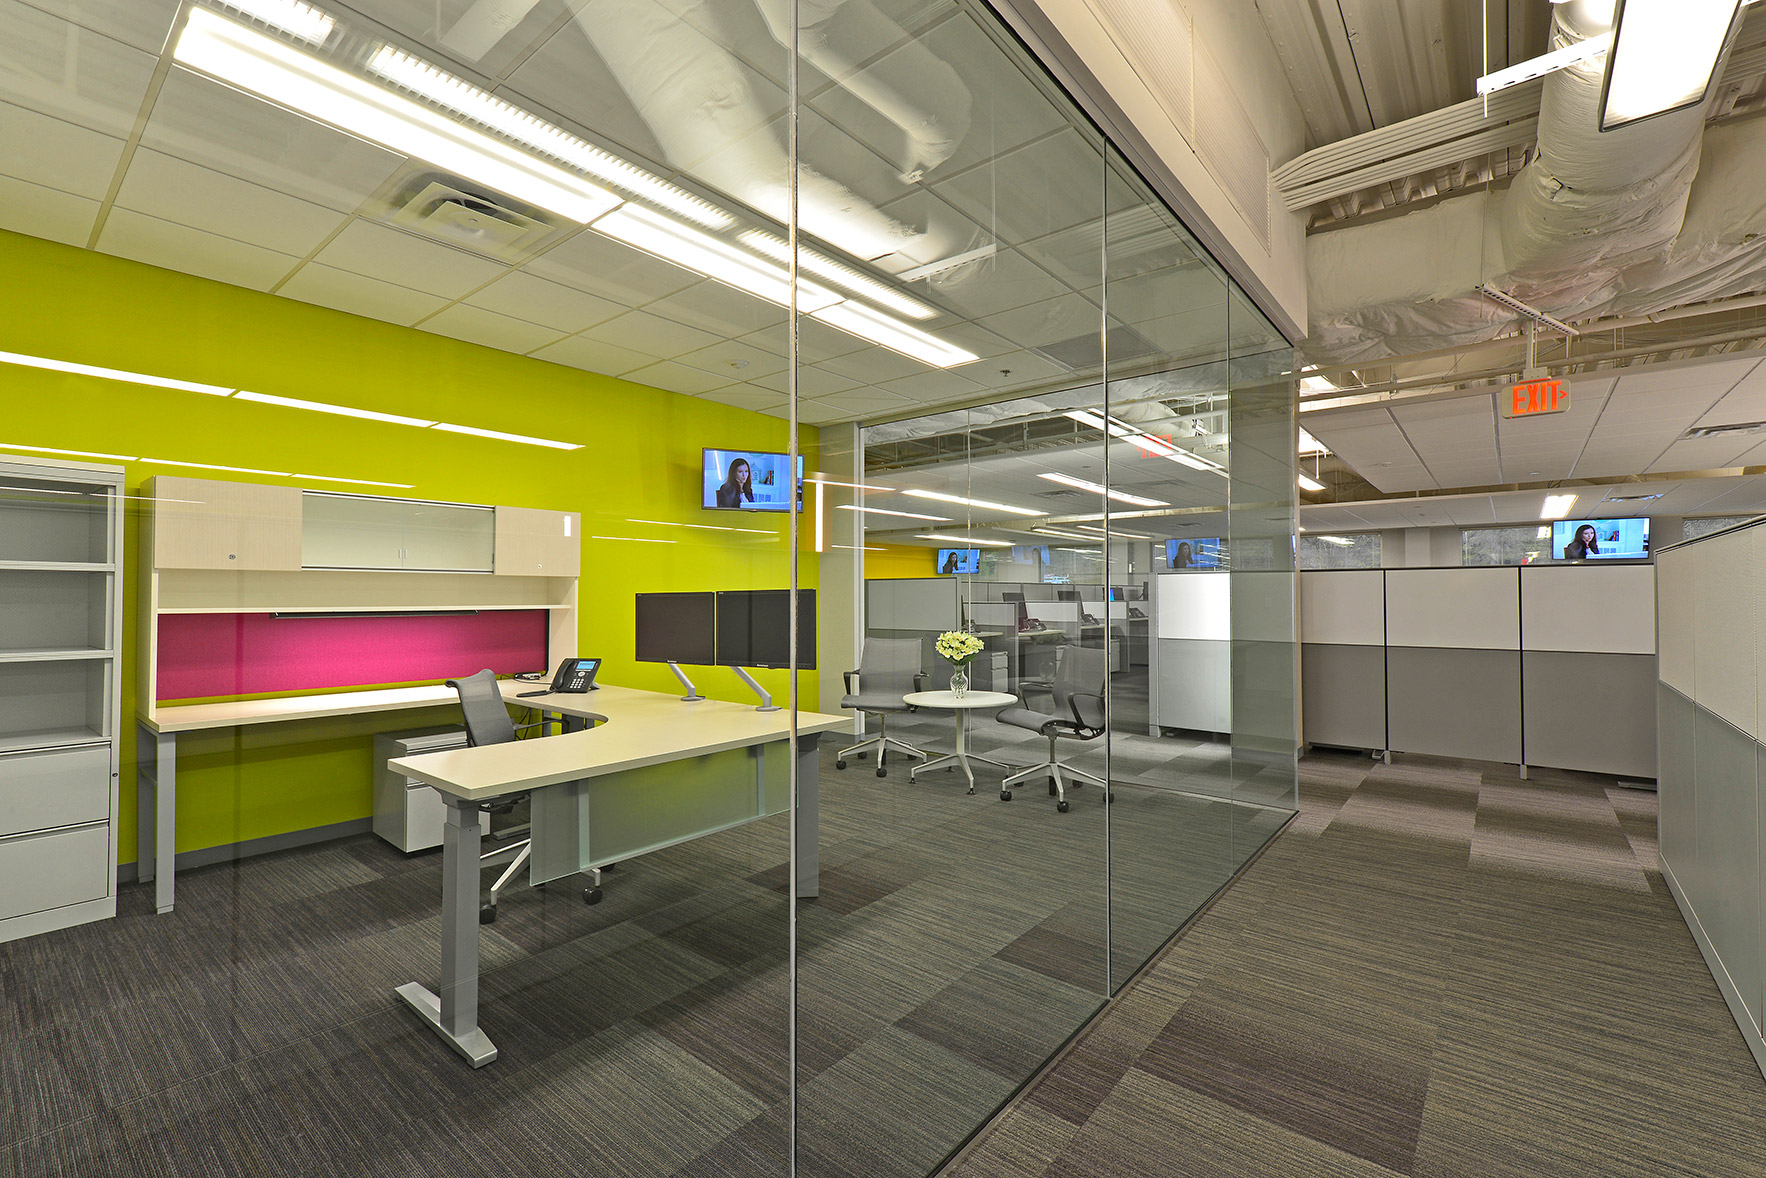 Glass walled offices inside the T Mobile Corporate Office